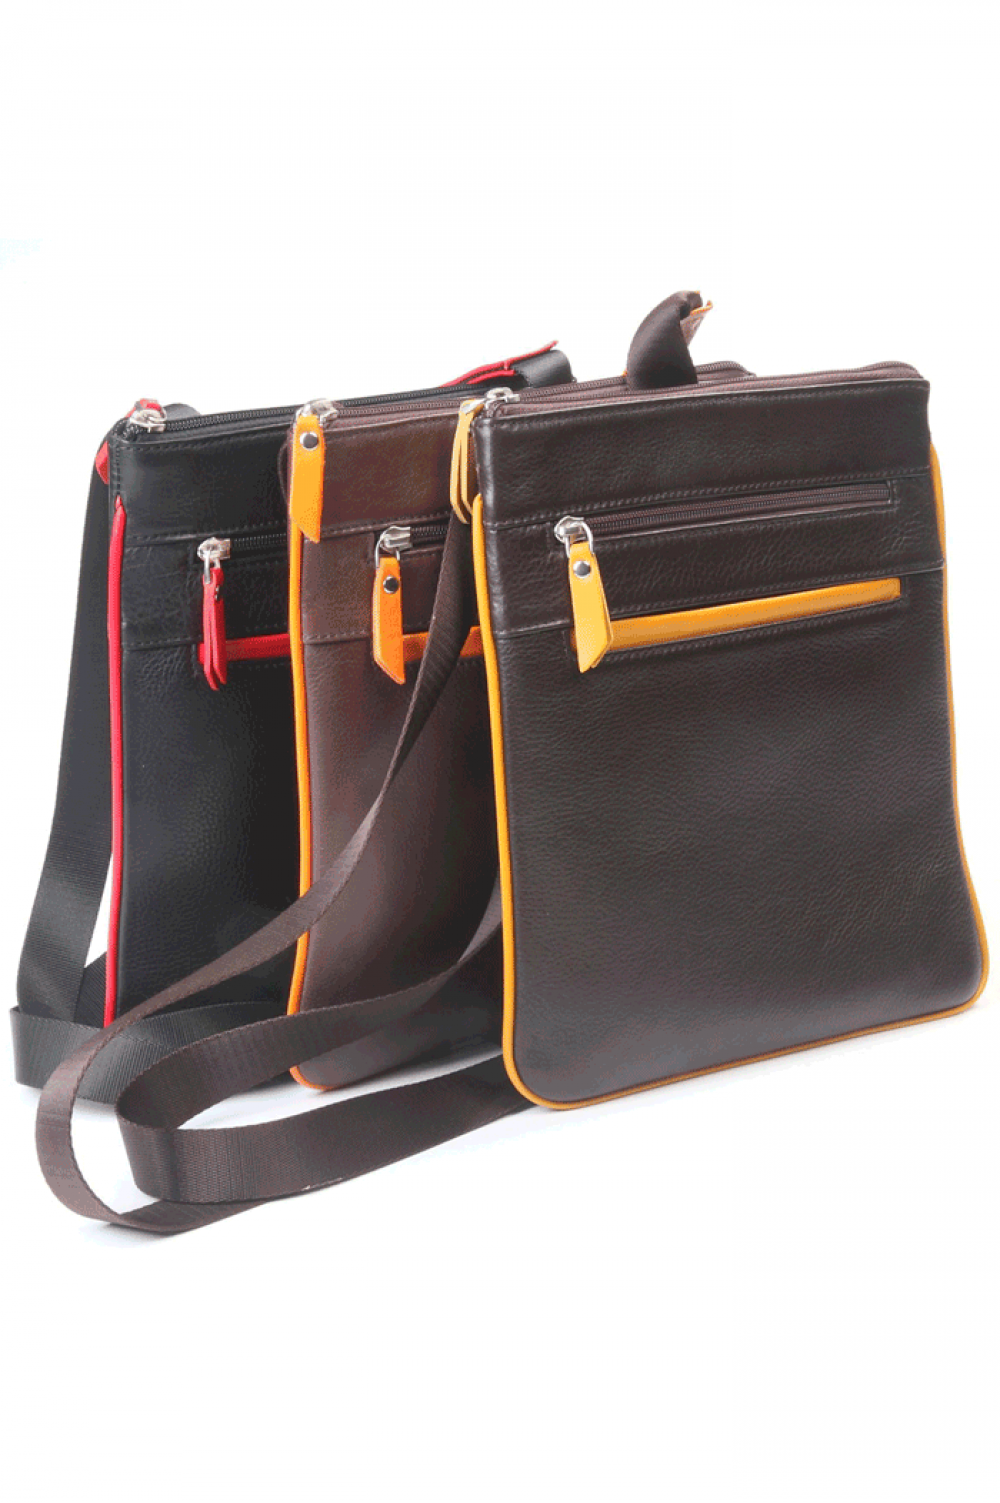 Sport Bag for iPad with pockets - 217681